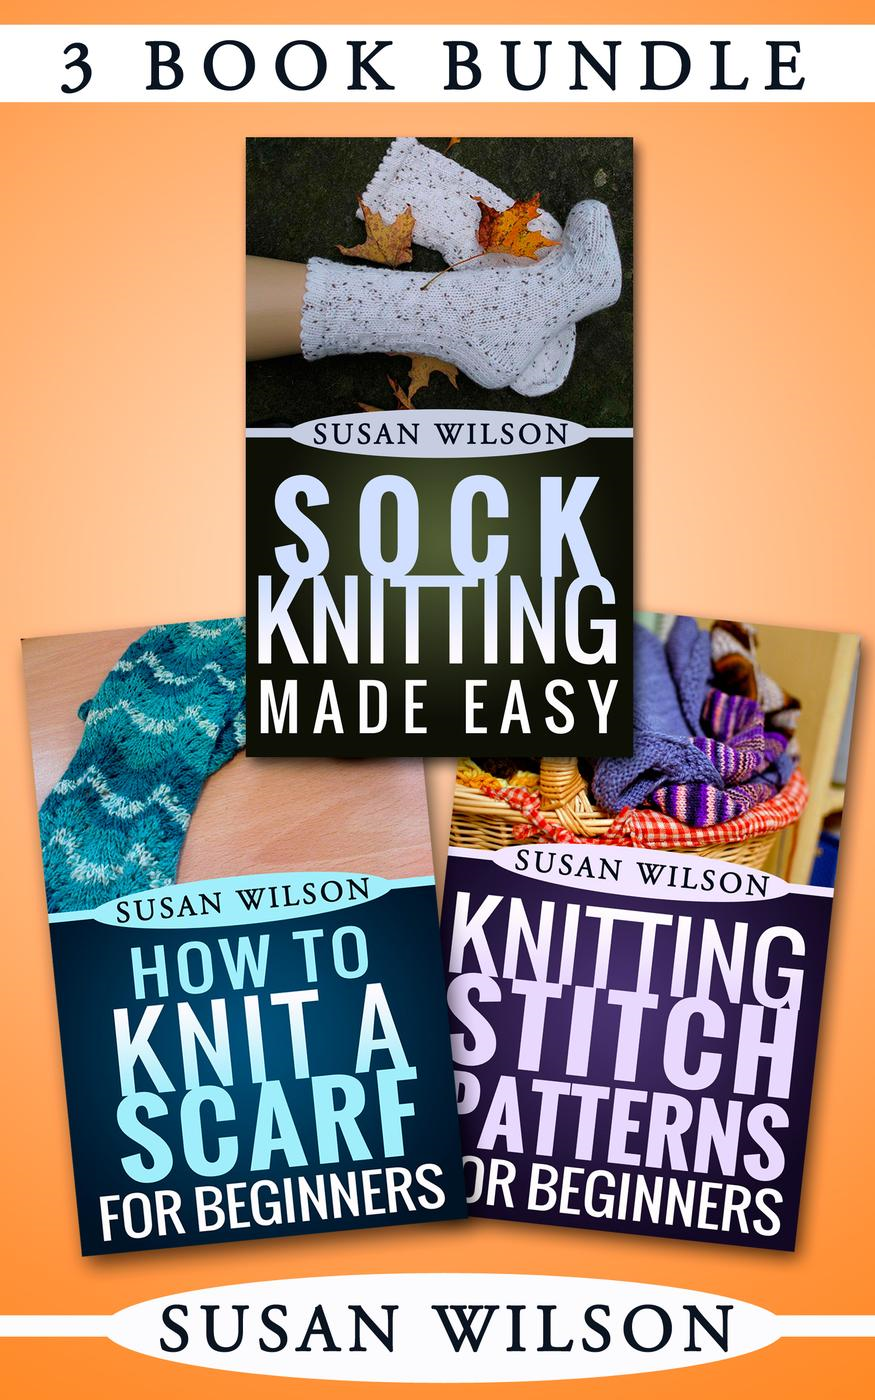 Knitting Basics Book : Download quot book bundle knitting stitch patterns for